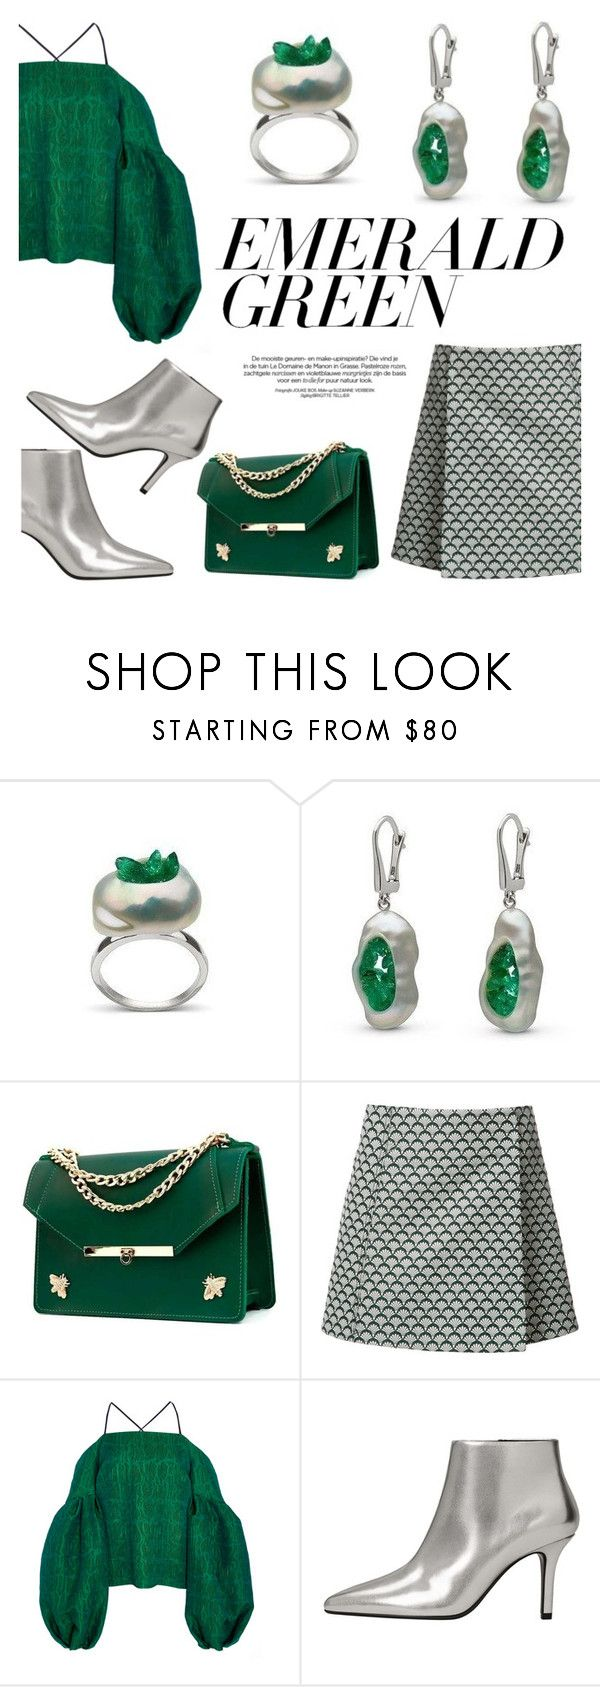 """""""Emerald City: Pops of Green"""" by littlehjewelry ❤ liked on Polyvore featuring Angela Valentine Handbags, Misha Nonoo, Hellessy and MANGO"""